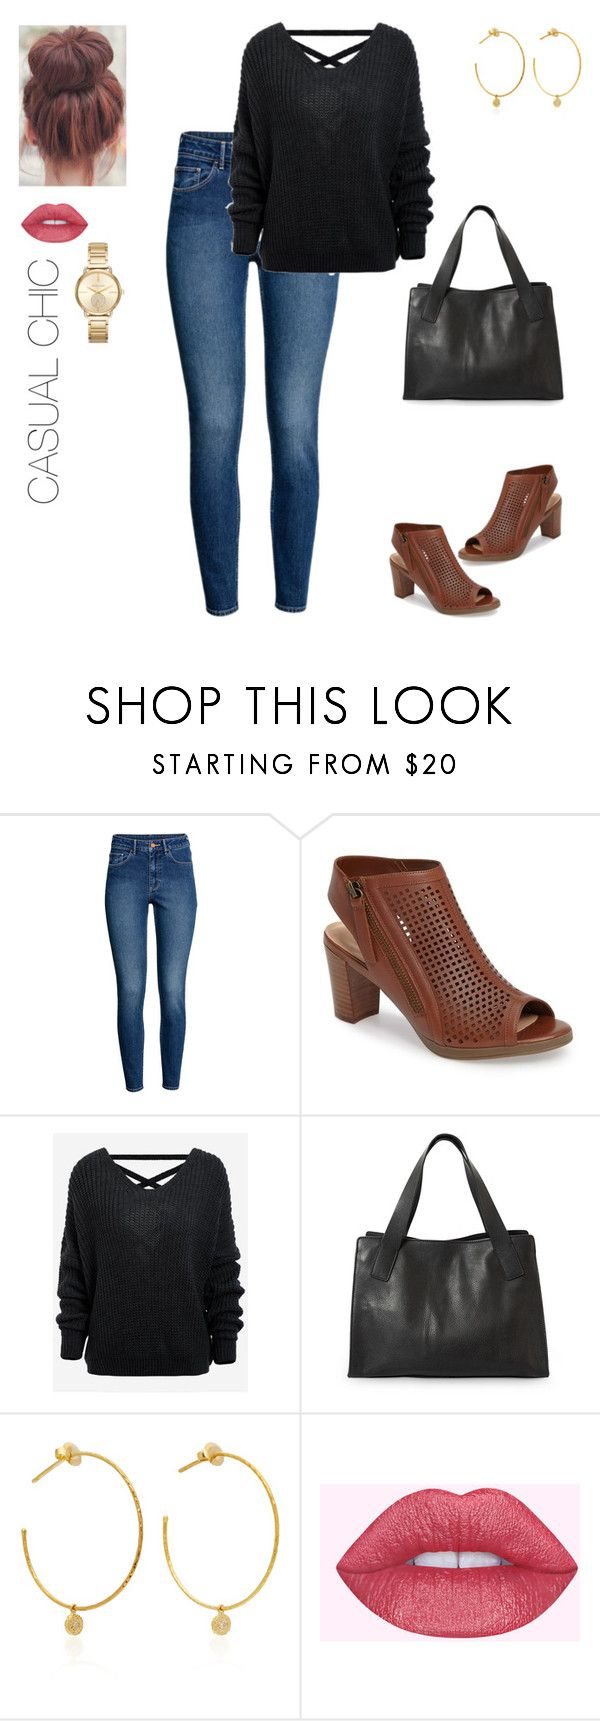 """Casual Chic"" by dalba77 ❤ liked on Polyvore featuring H&M, Bella Vita, Yvonne Léon, MICHAEL Michael Kors, WorkWear and casual"